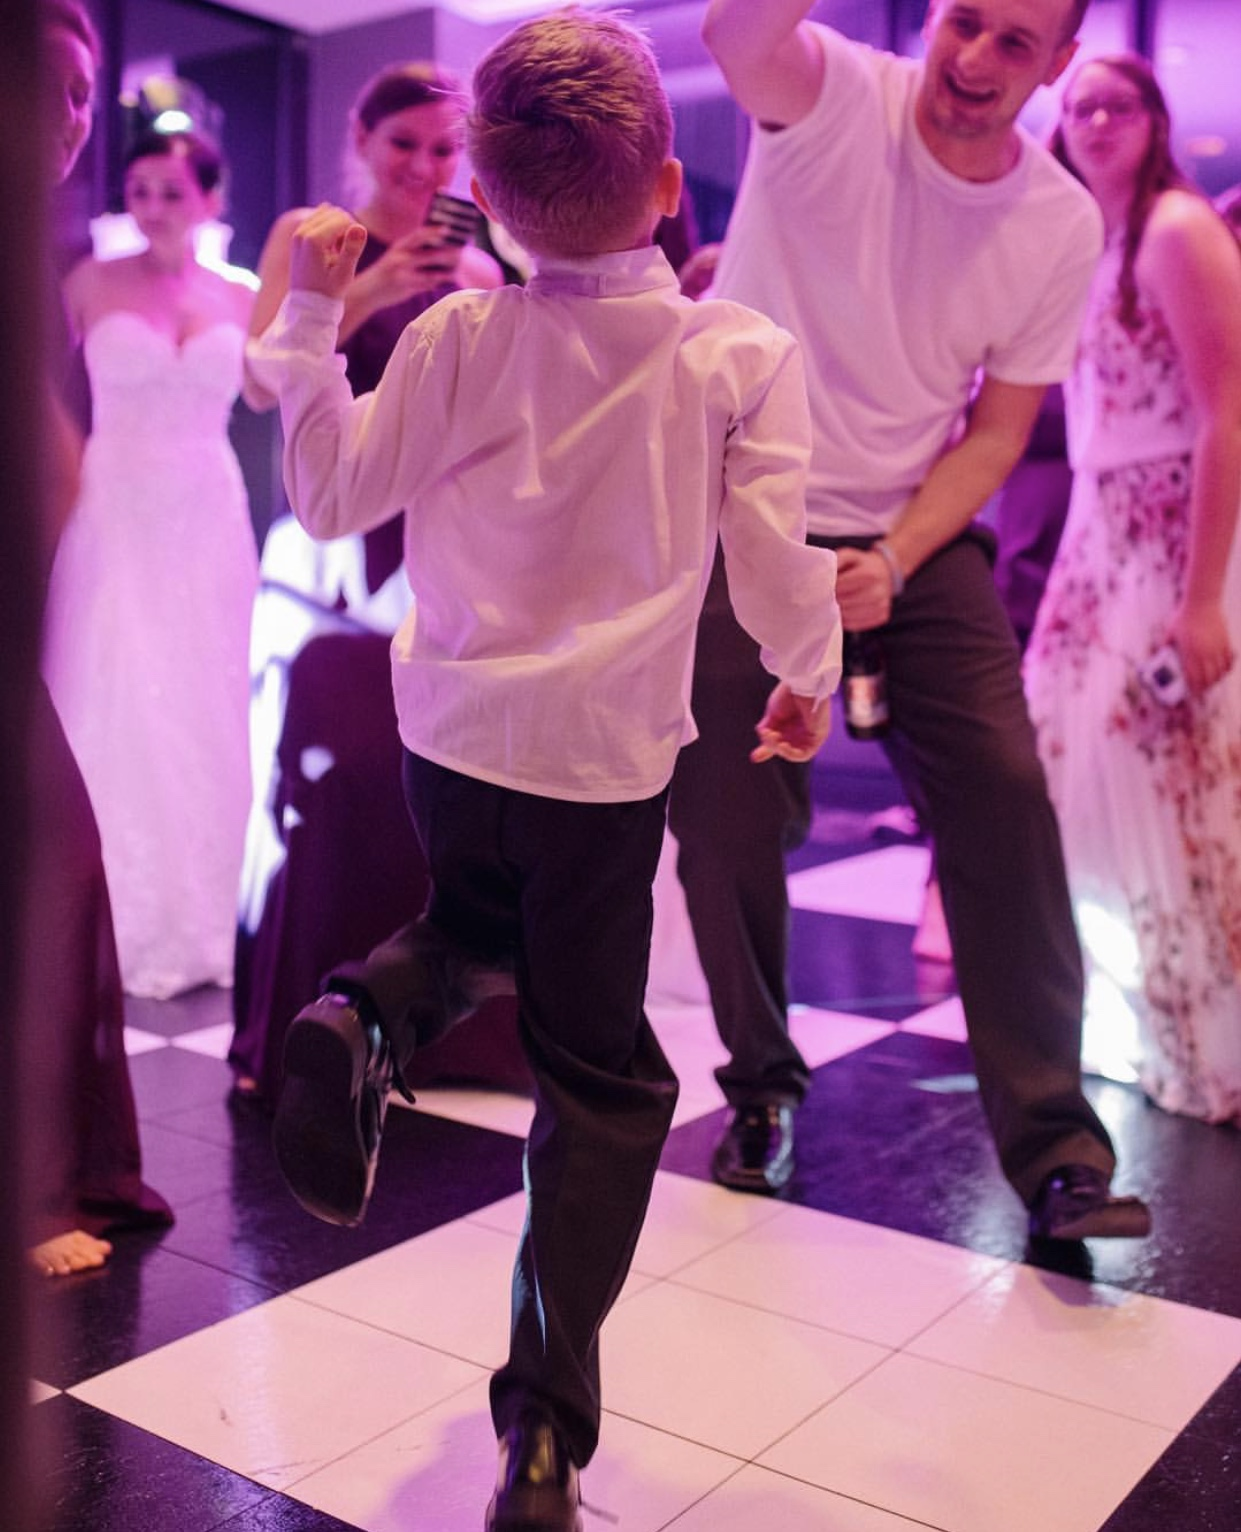 wedding kid dancing.jpg